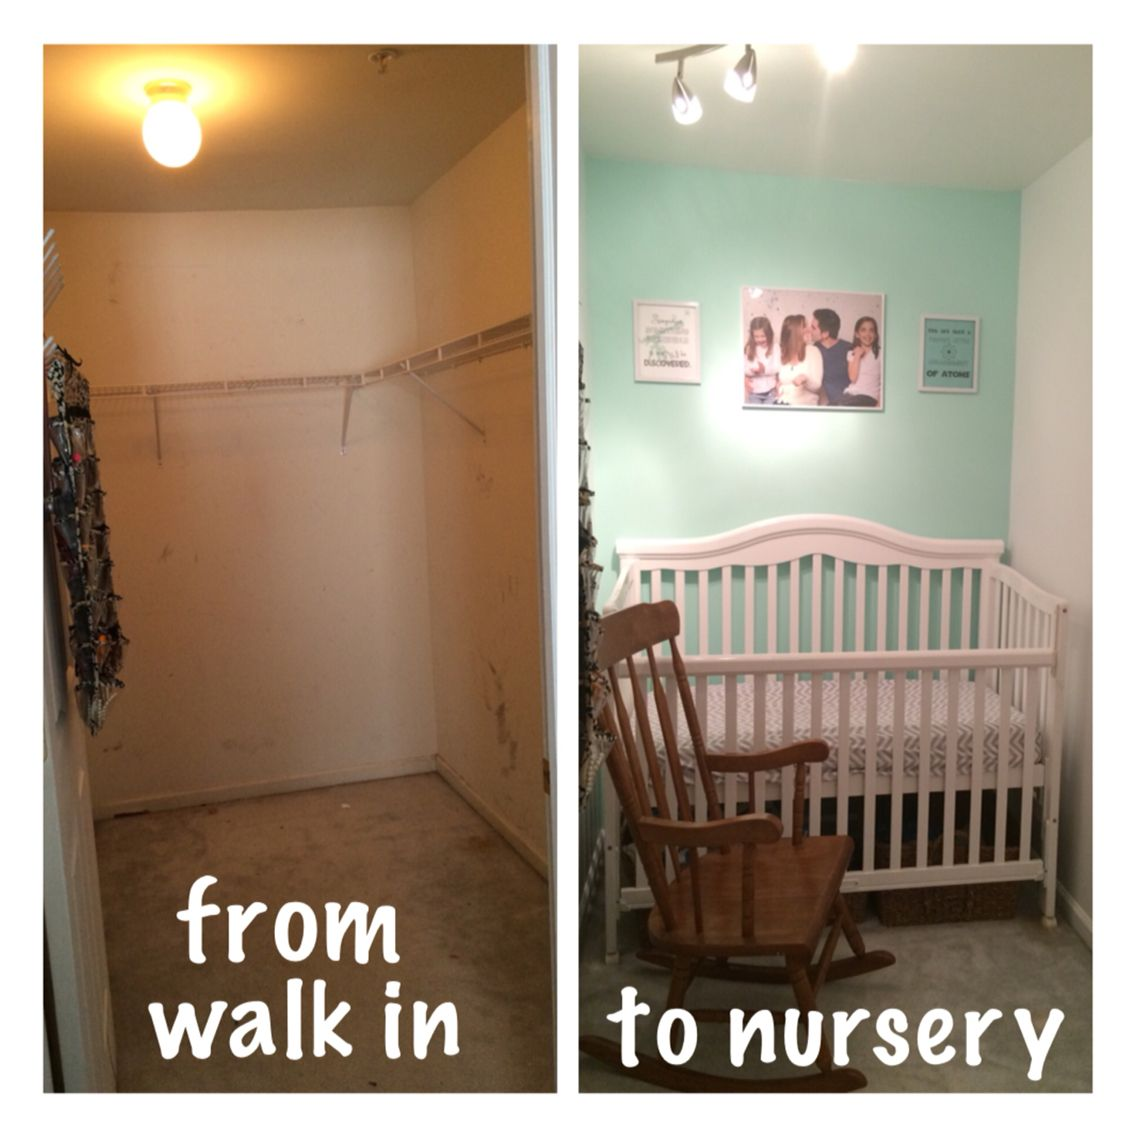 Convert A Walk In Closet To A Nursery #walkin #closet #nursery #